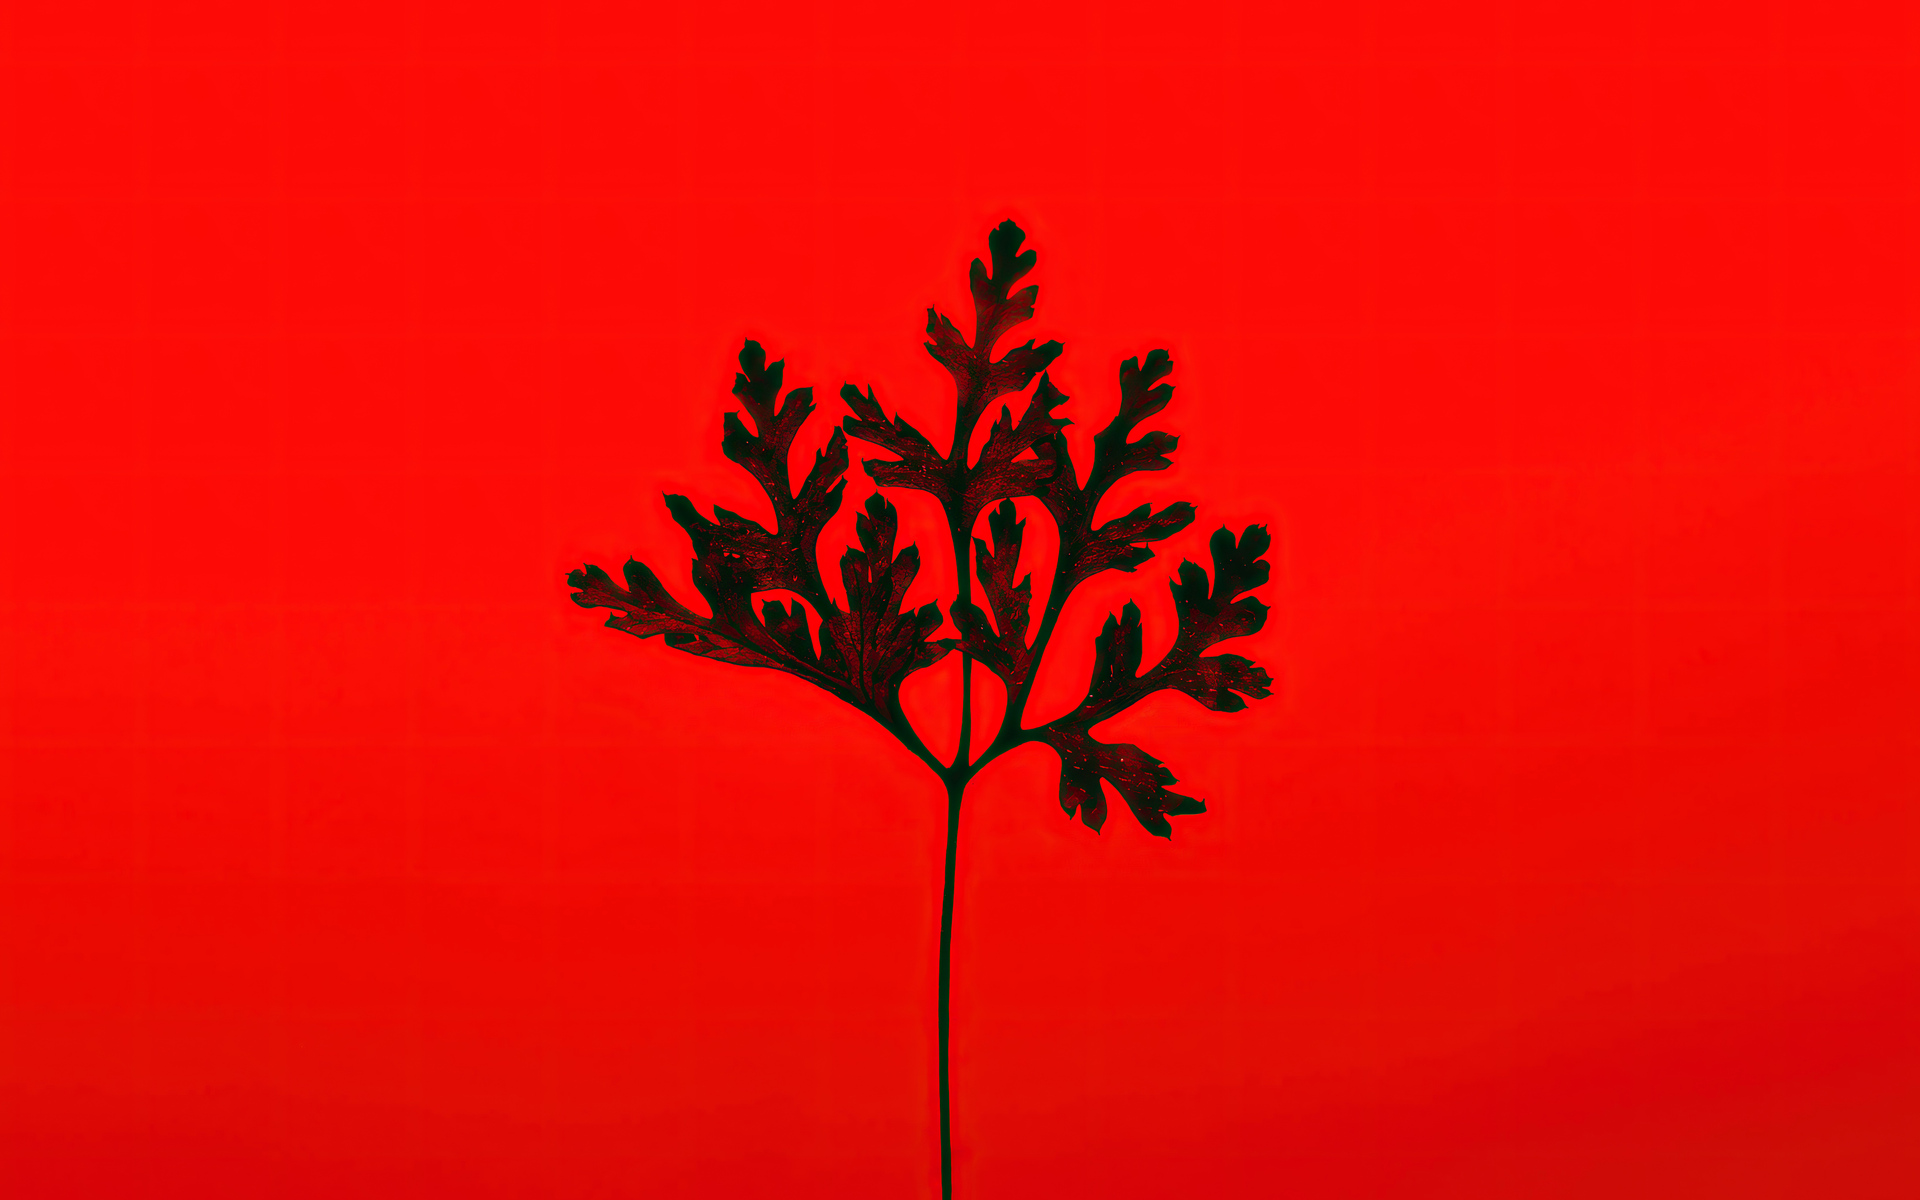 black-leaf-red-background-5k-bg.jpg